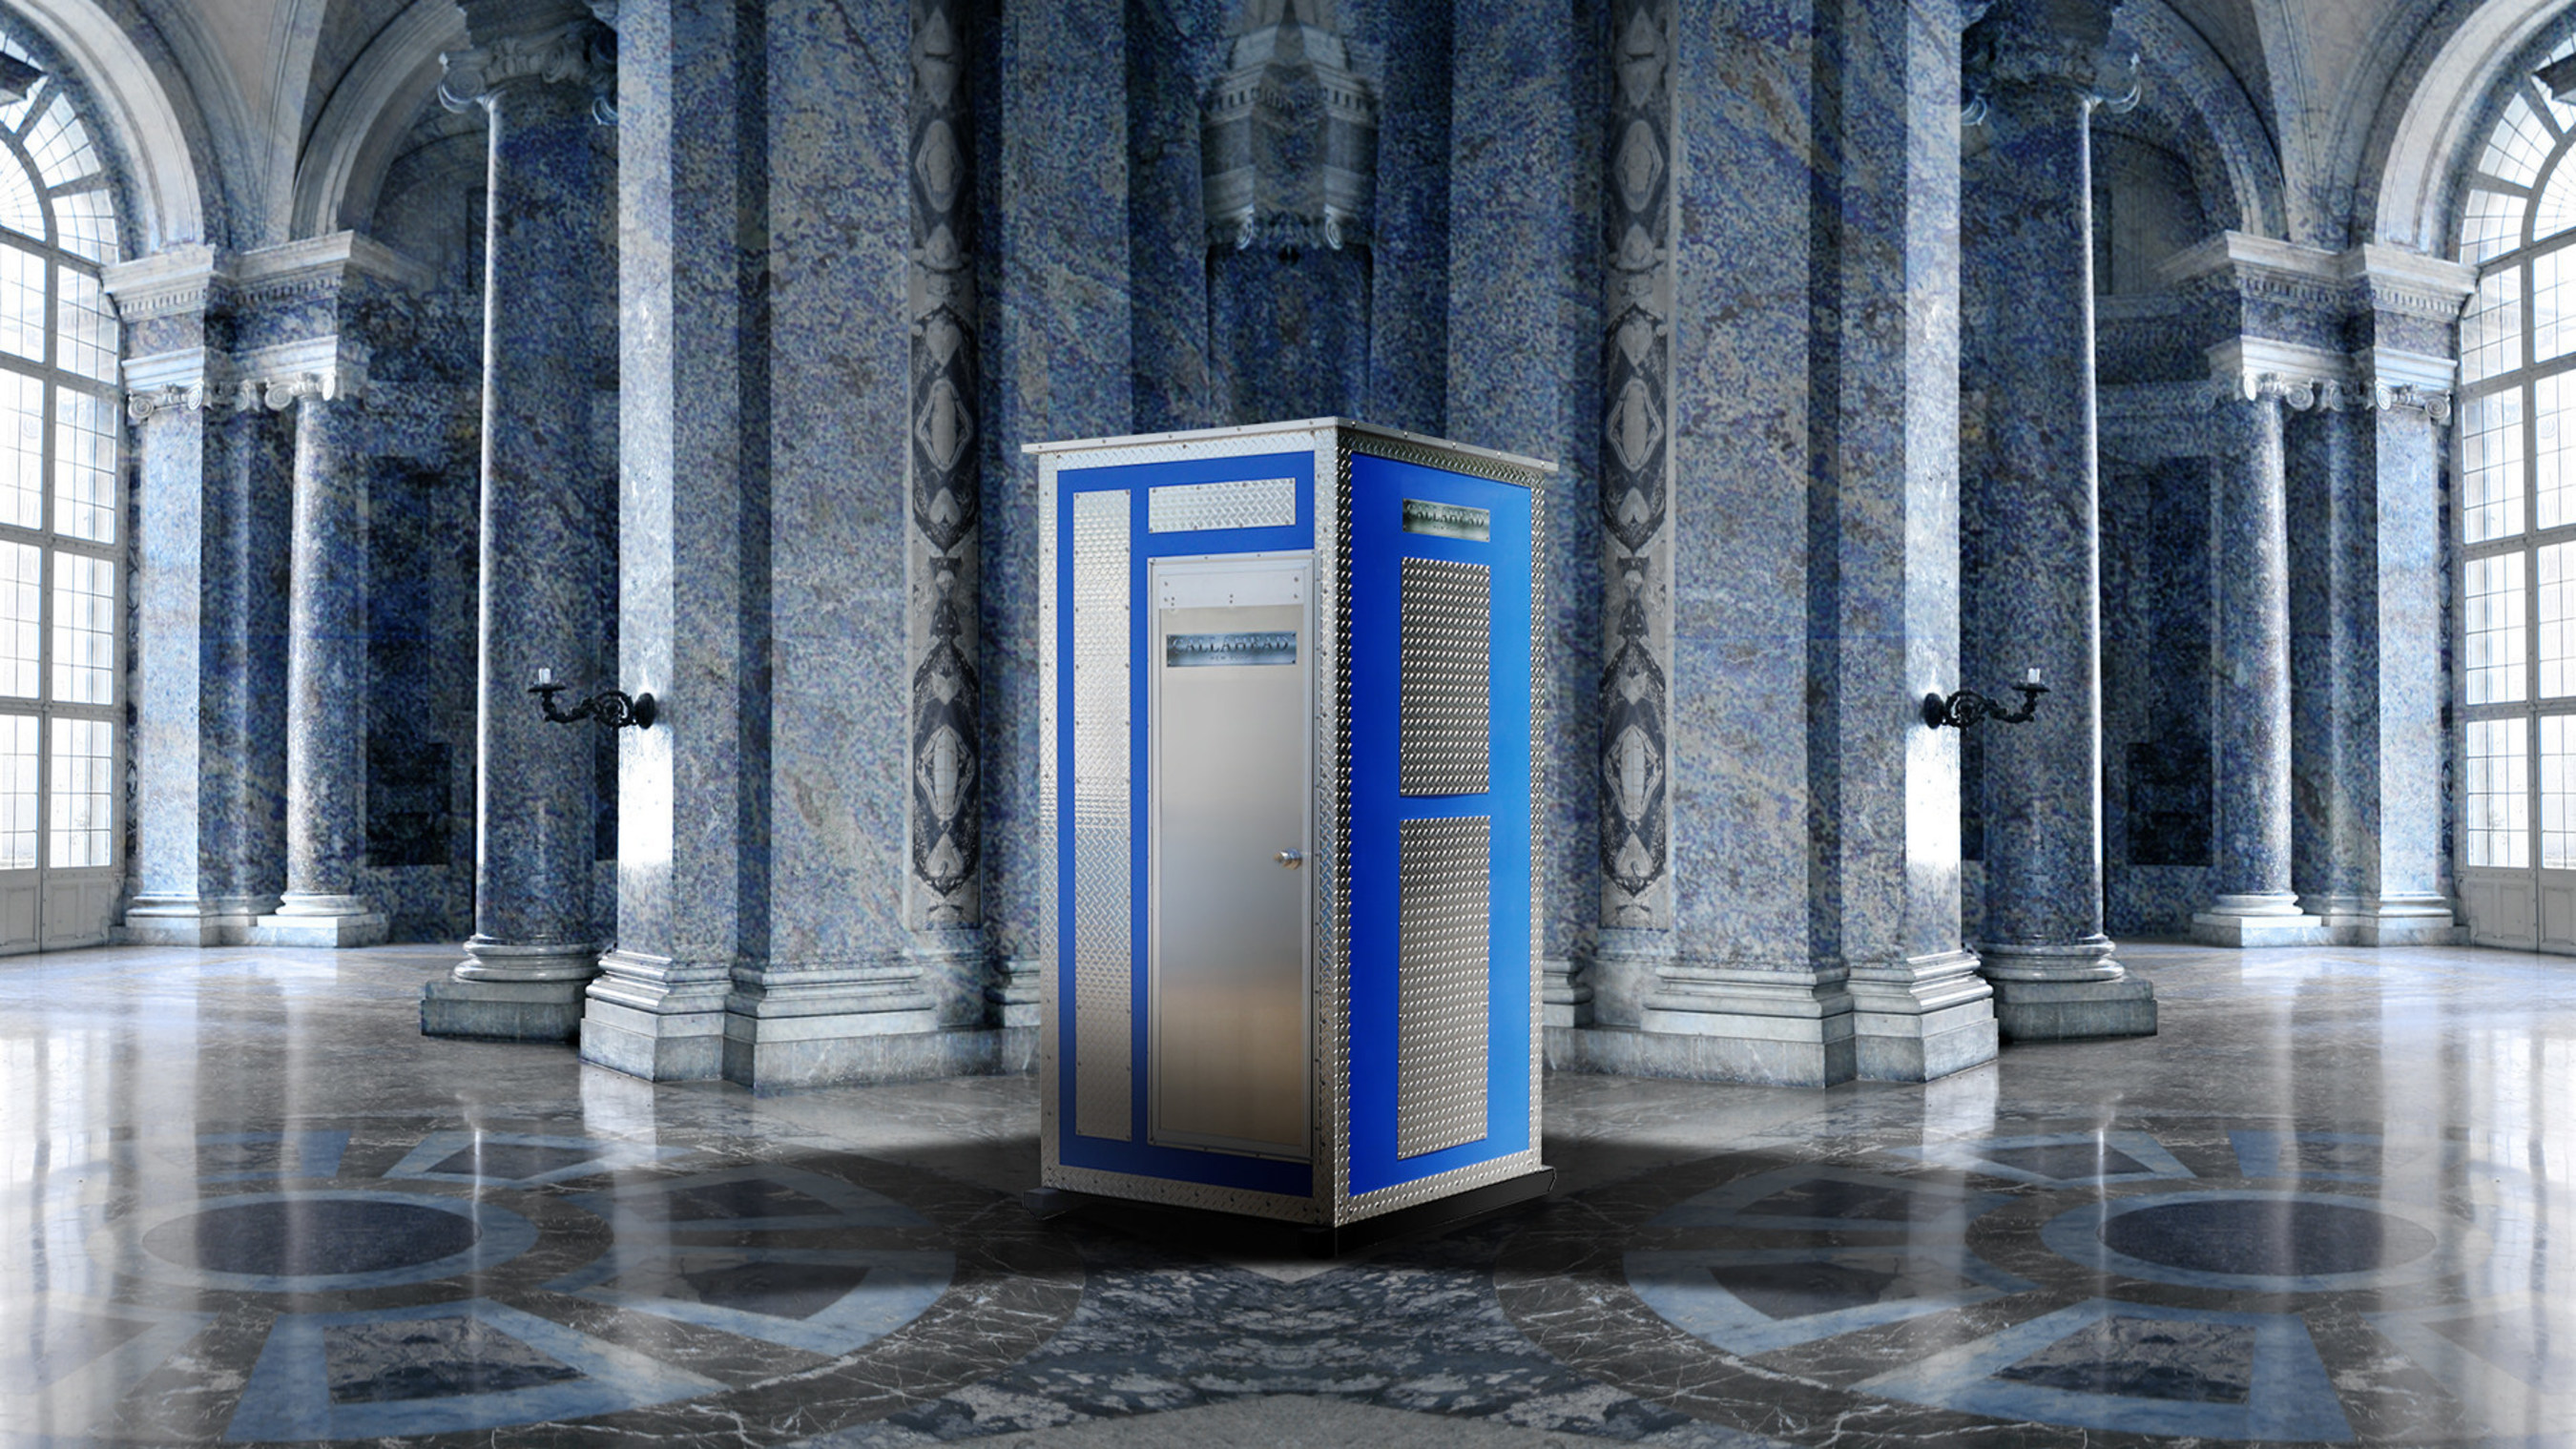 'The Waterloo' Portable Toilet by Callahead